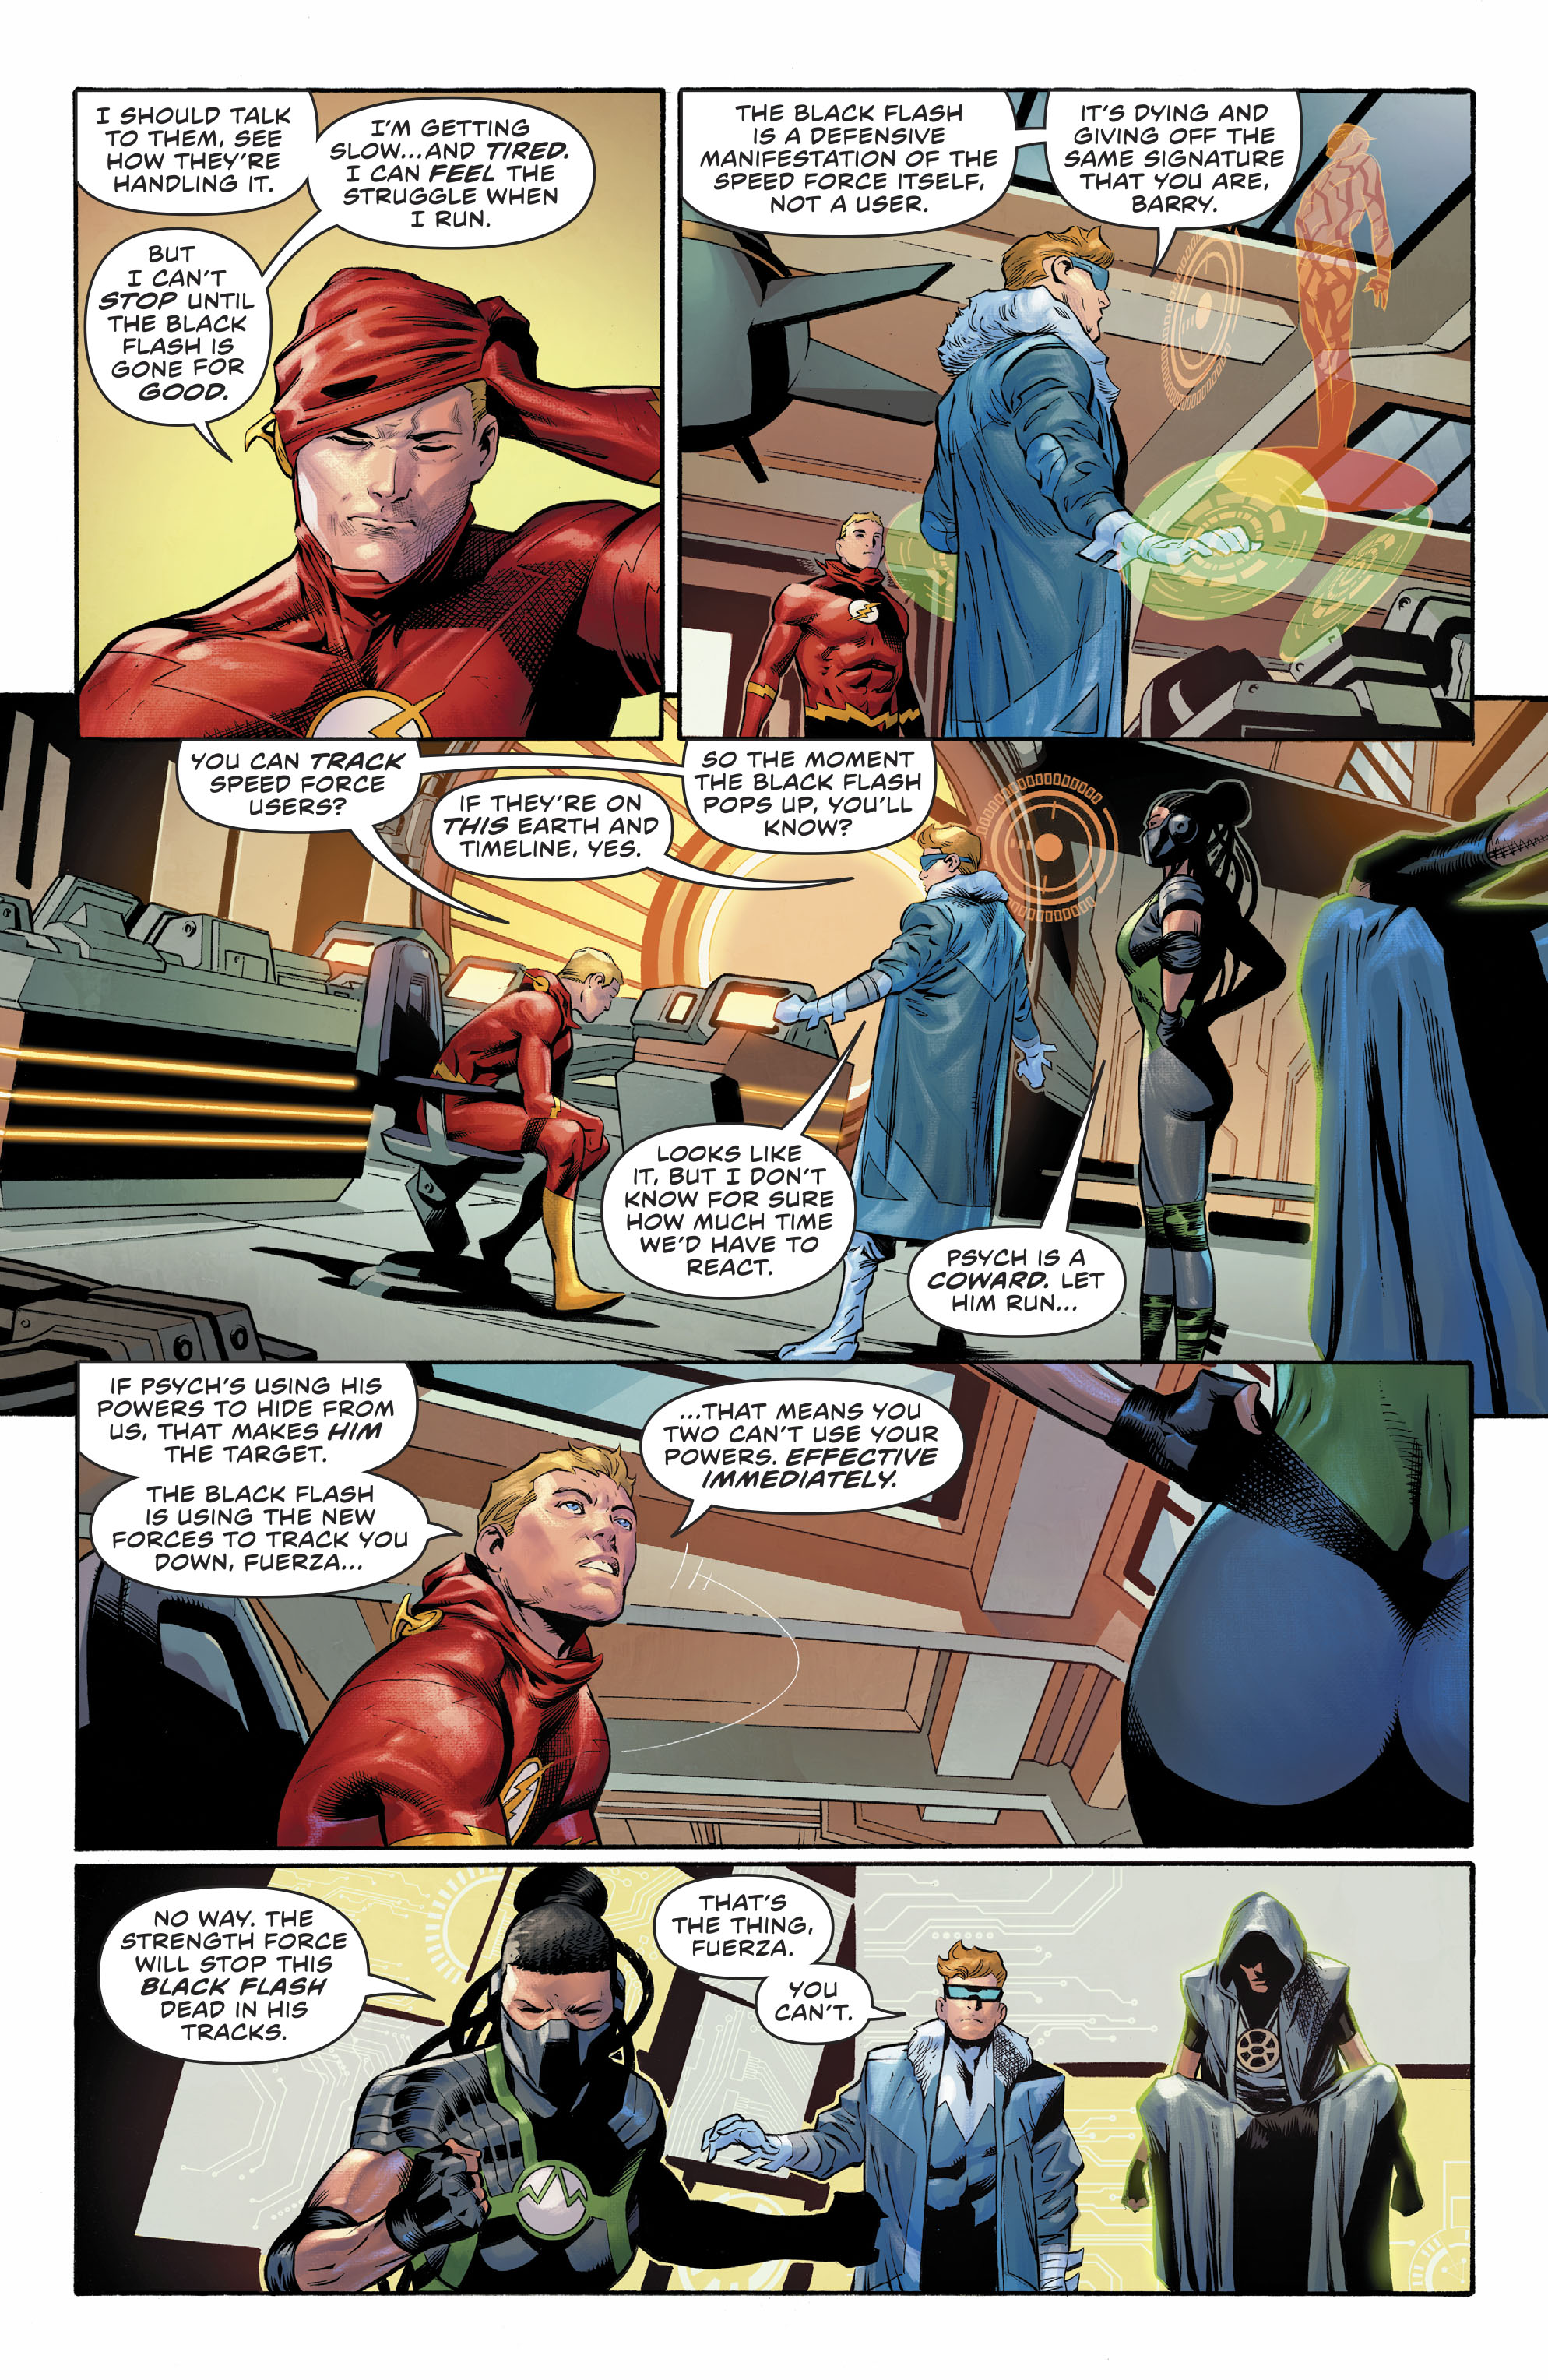 The Flash 2016 Chapter 78 Page 13